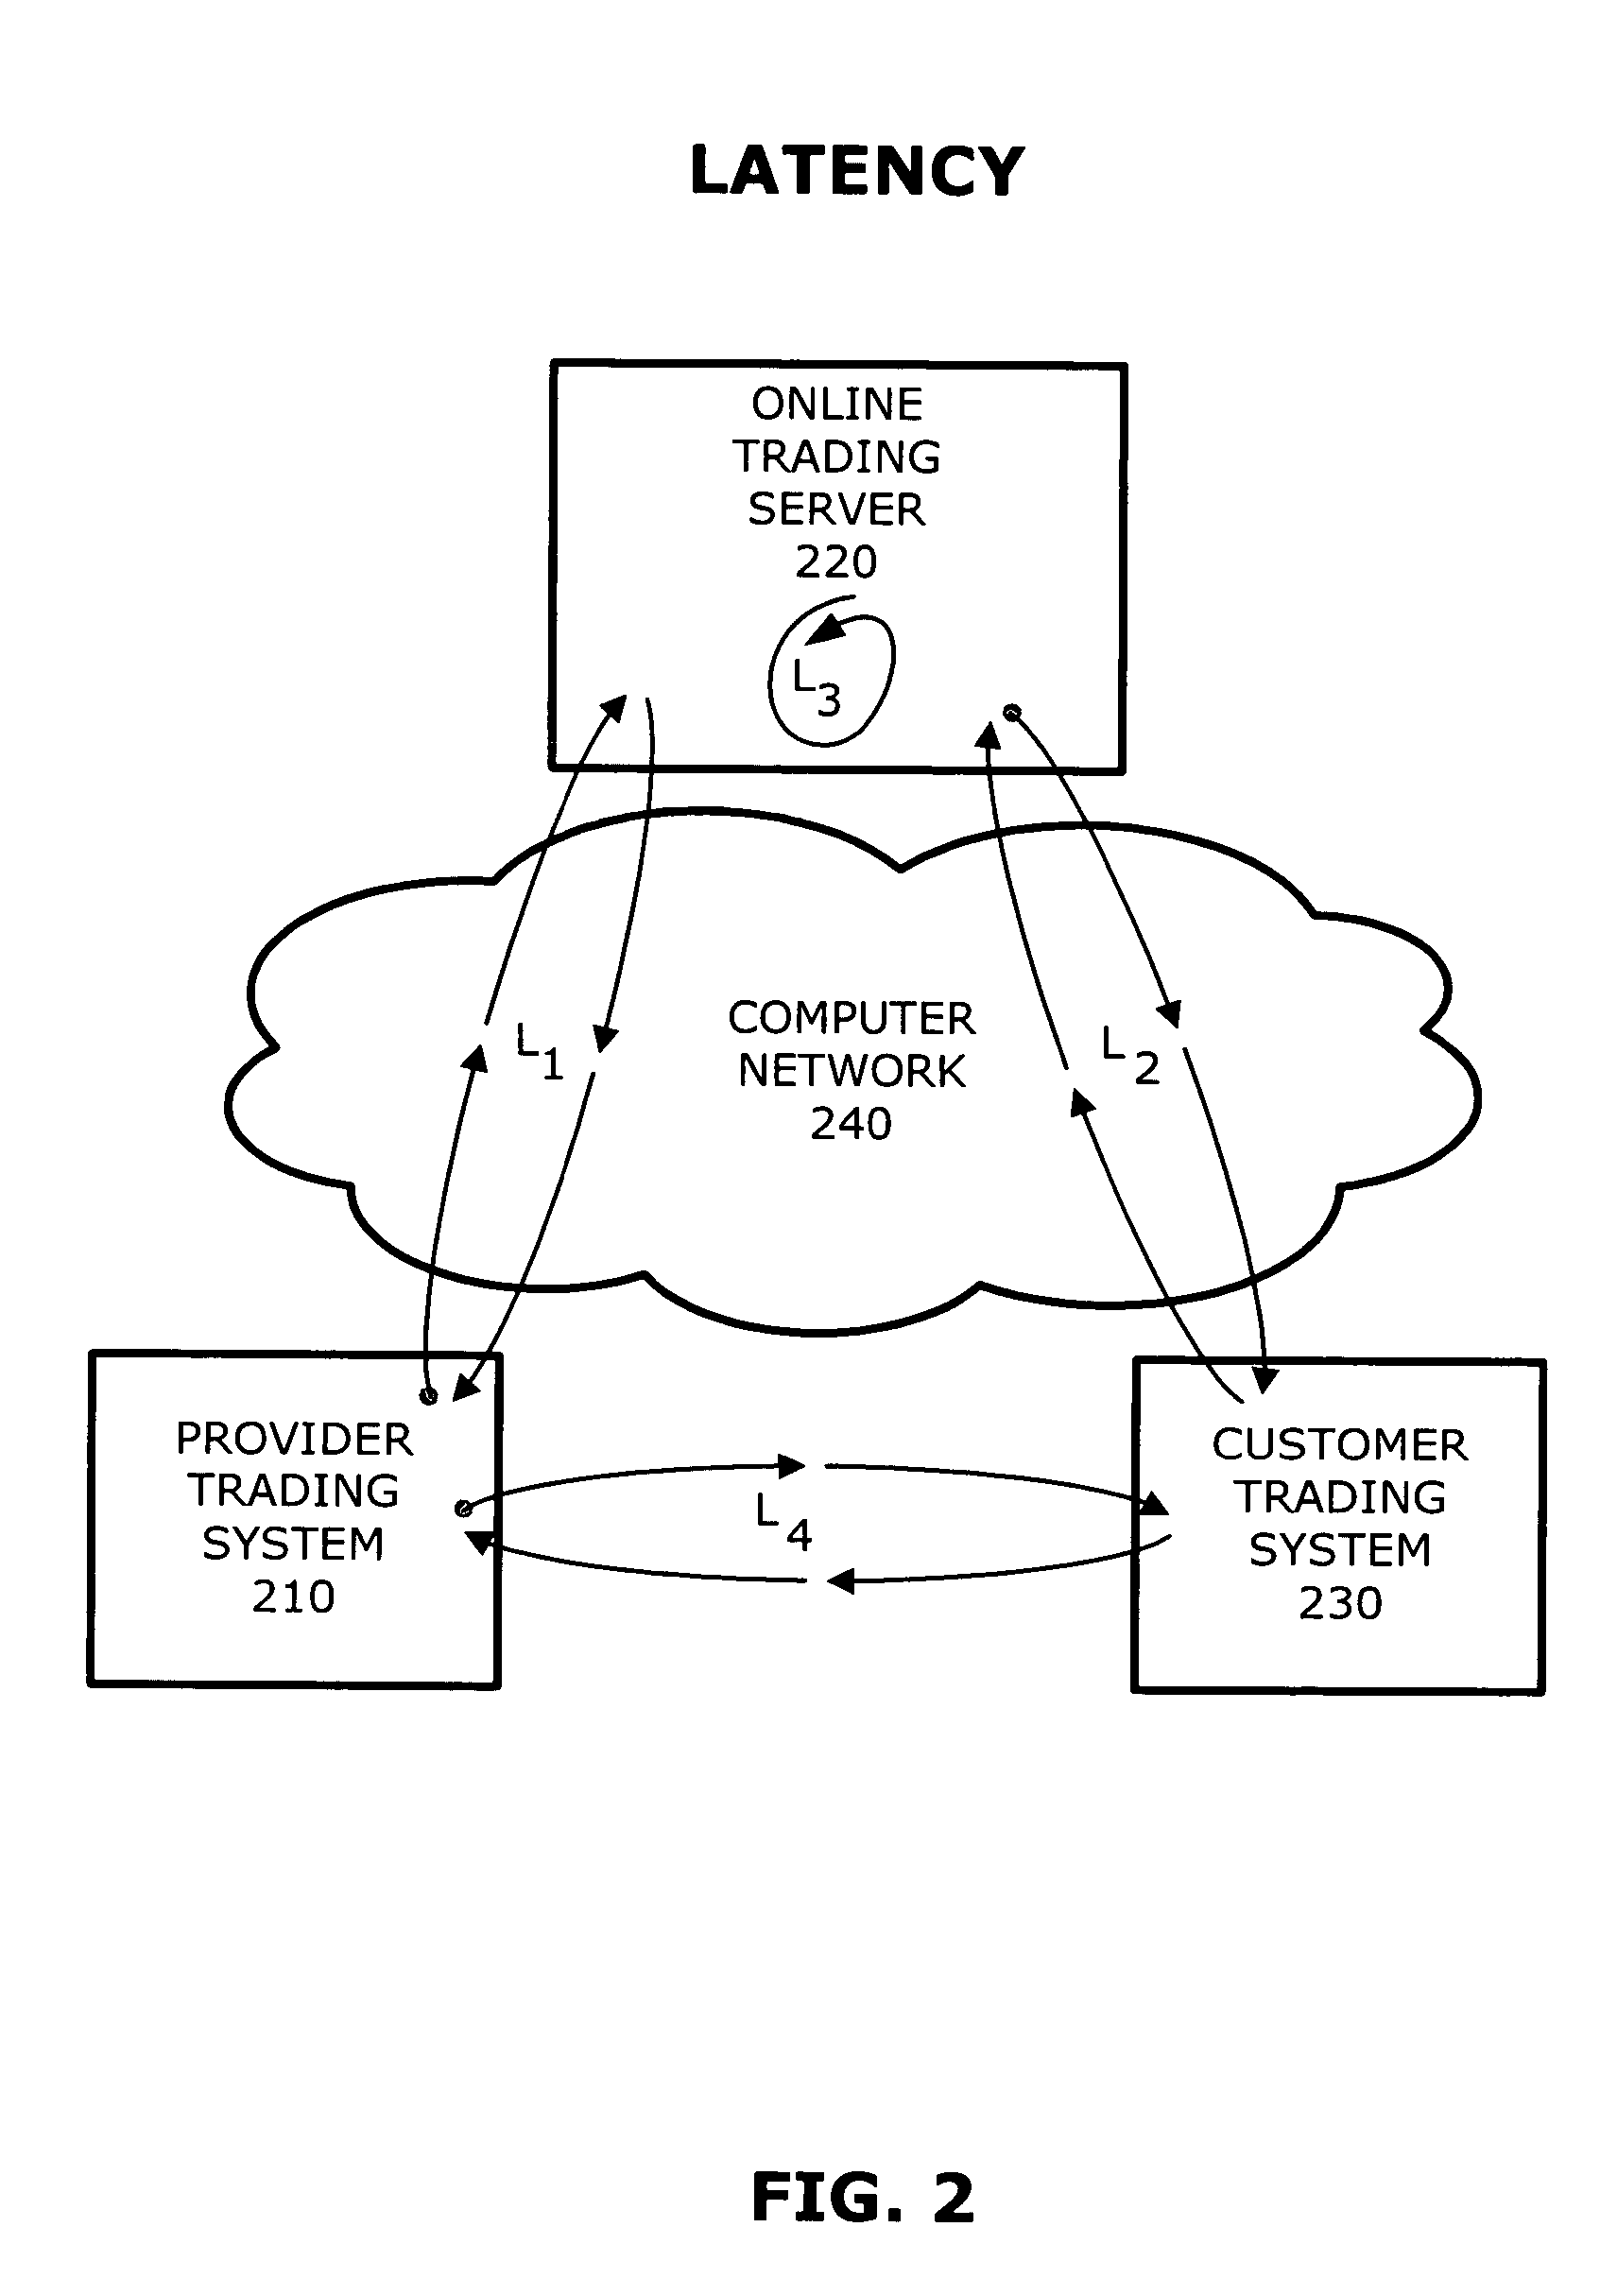 Latency in trading systems